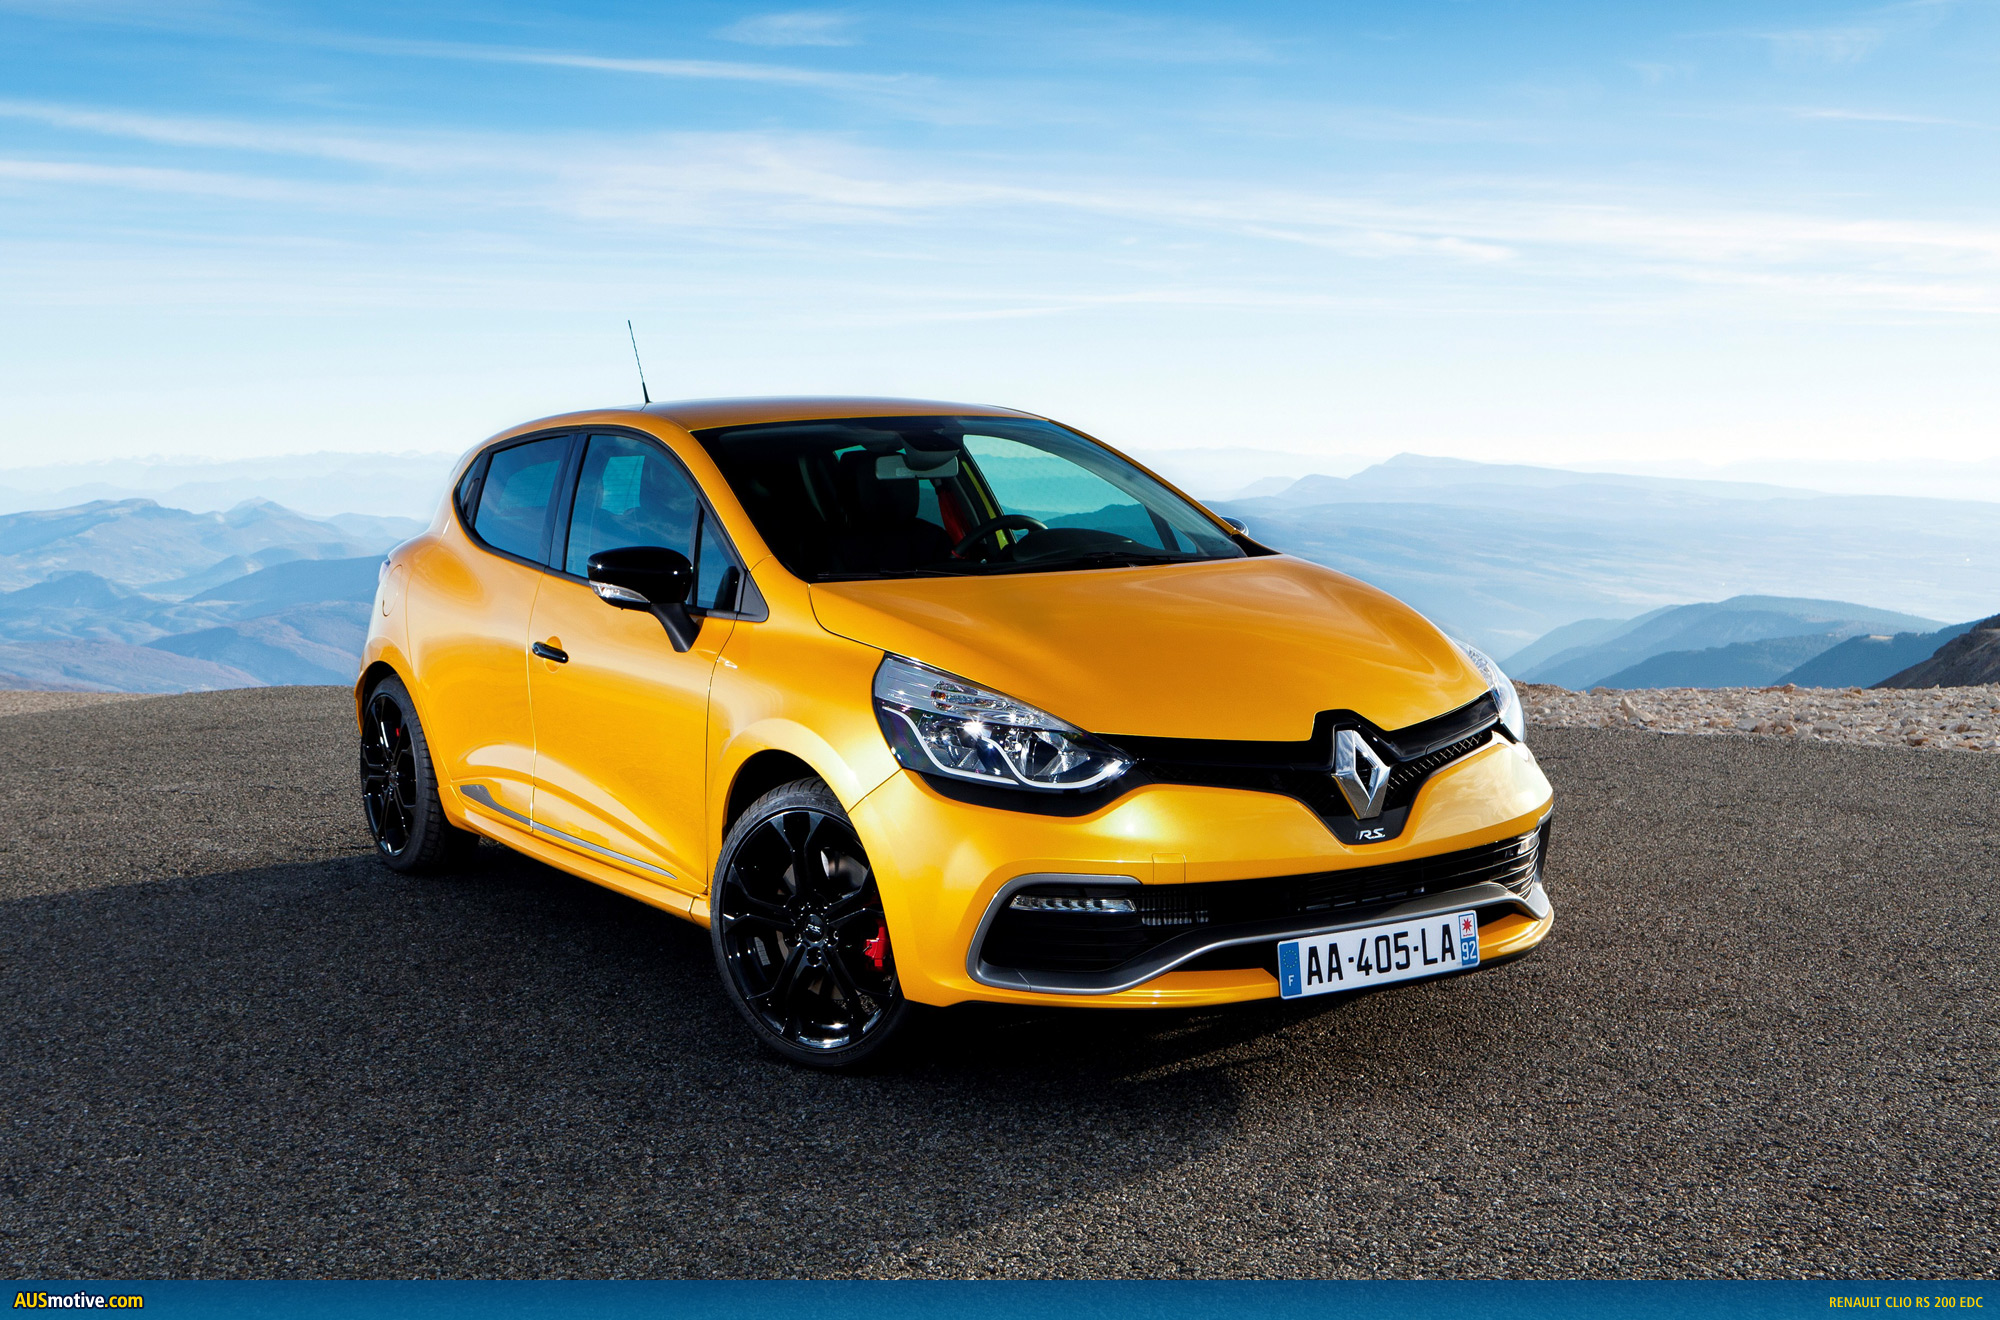 renault clio rs 200 edc specs confirmed. Black Bedroom Furniture Sets. Home Design Ideas